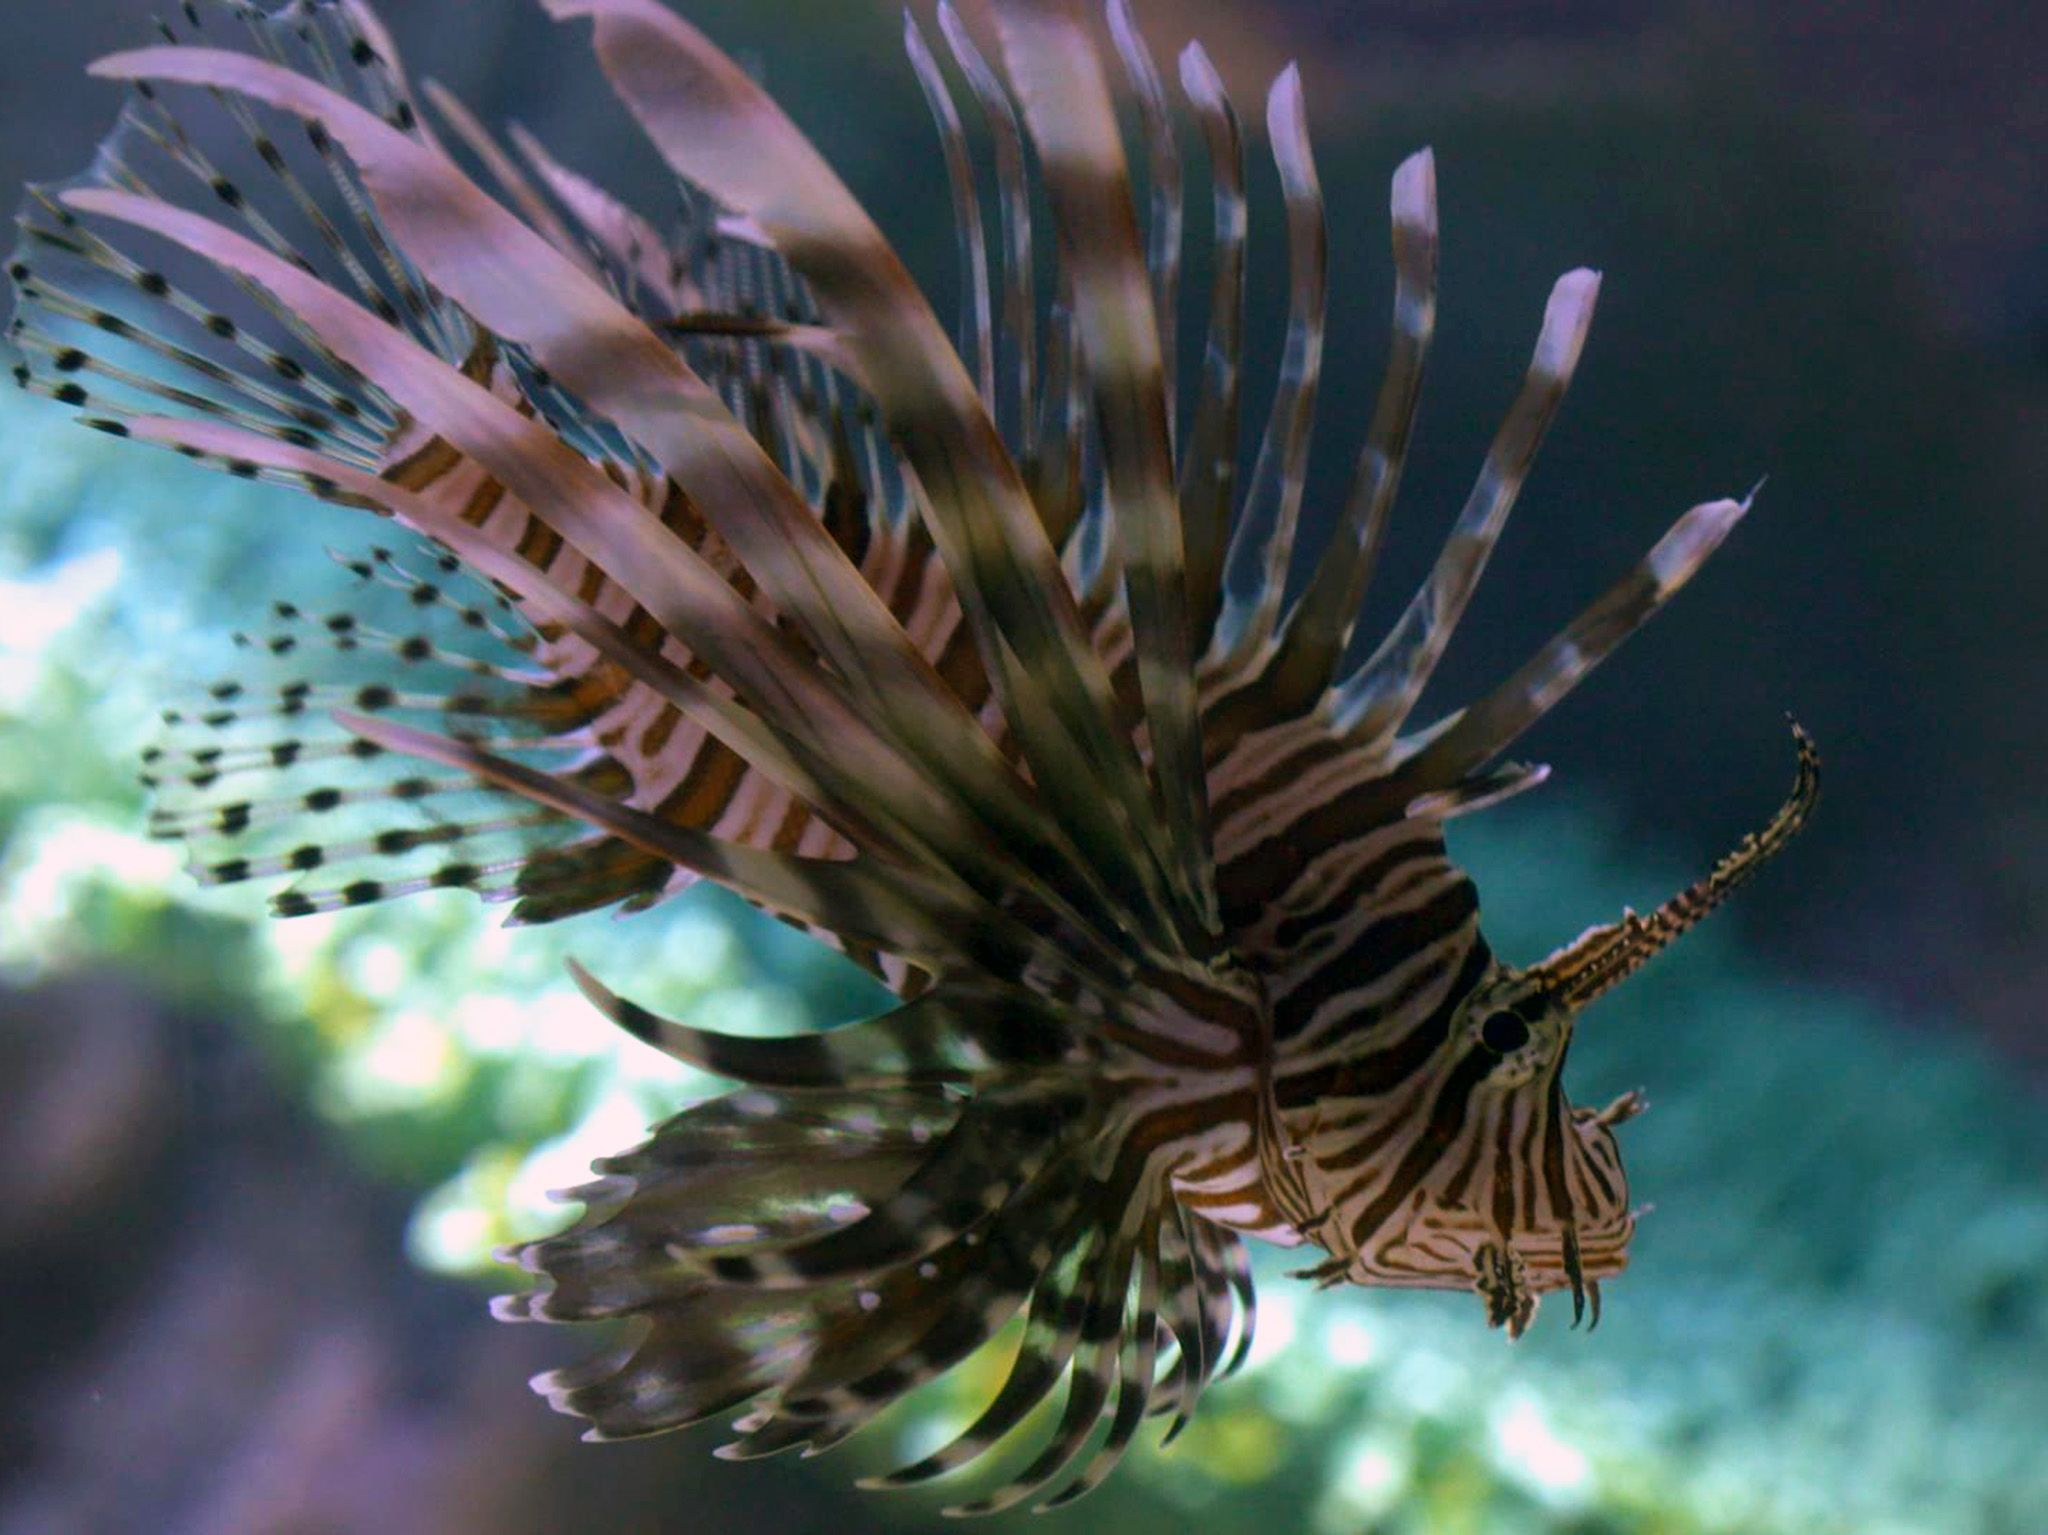 Cancun, Mexico:  A lionfish swims in its tank at the Interactive Aquarium Cancun.  This image is... [Photo of the day - May 2018]